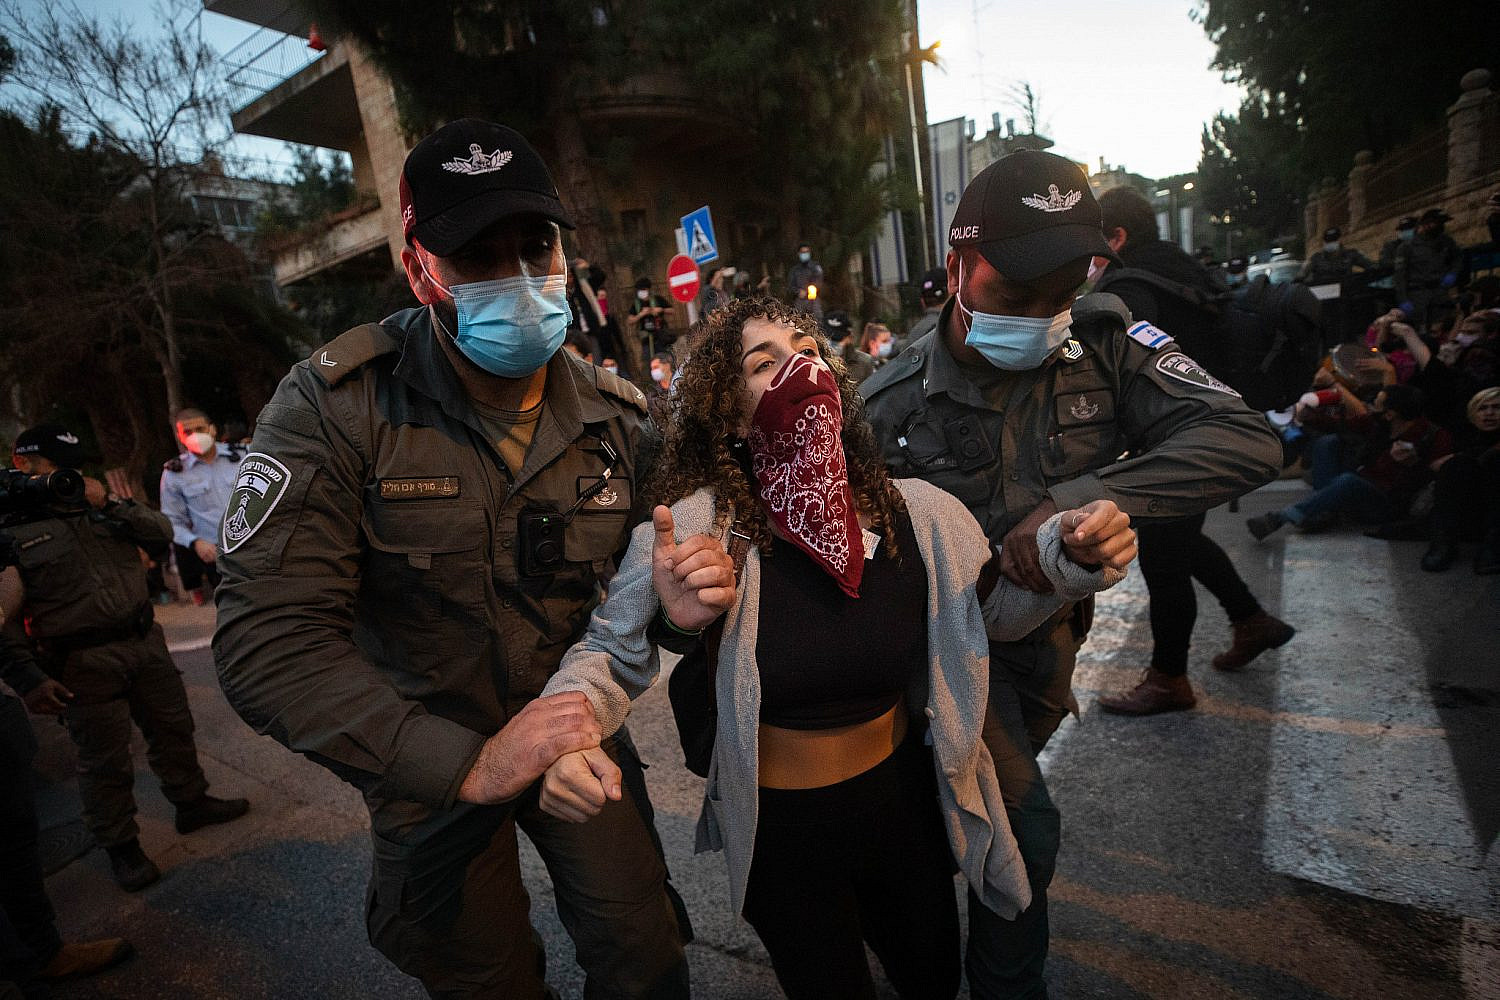 Israeli police officers scuffle with demonstrators during a protest against Prime Minister Benjamin Netanyahu, outside the PM's official residence in Jerusalem, Jan. 2, 2021. (Olivier Fitoussi/Flash90)